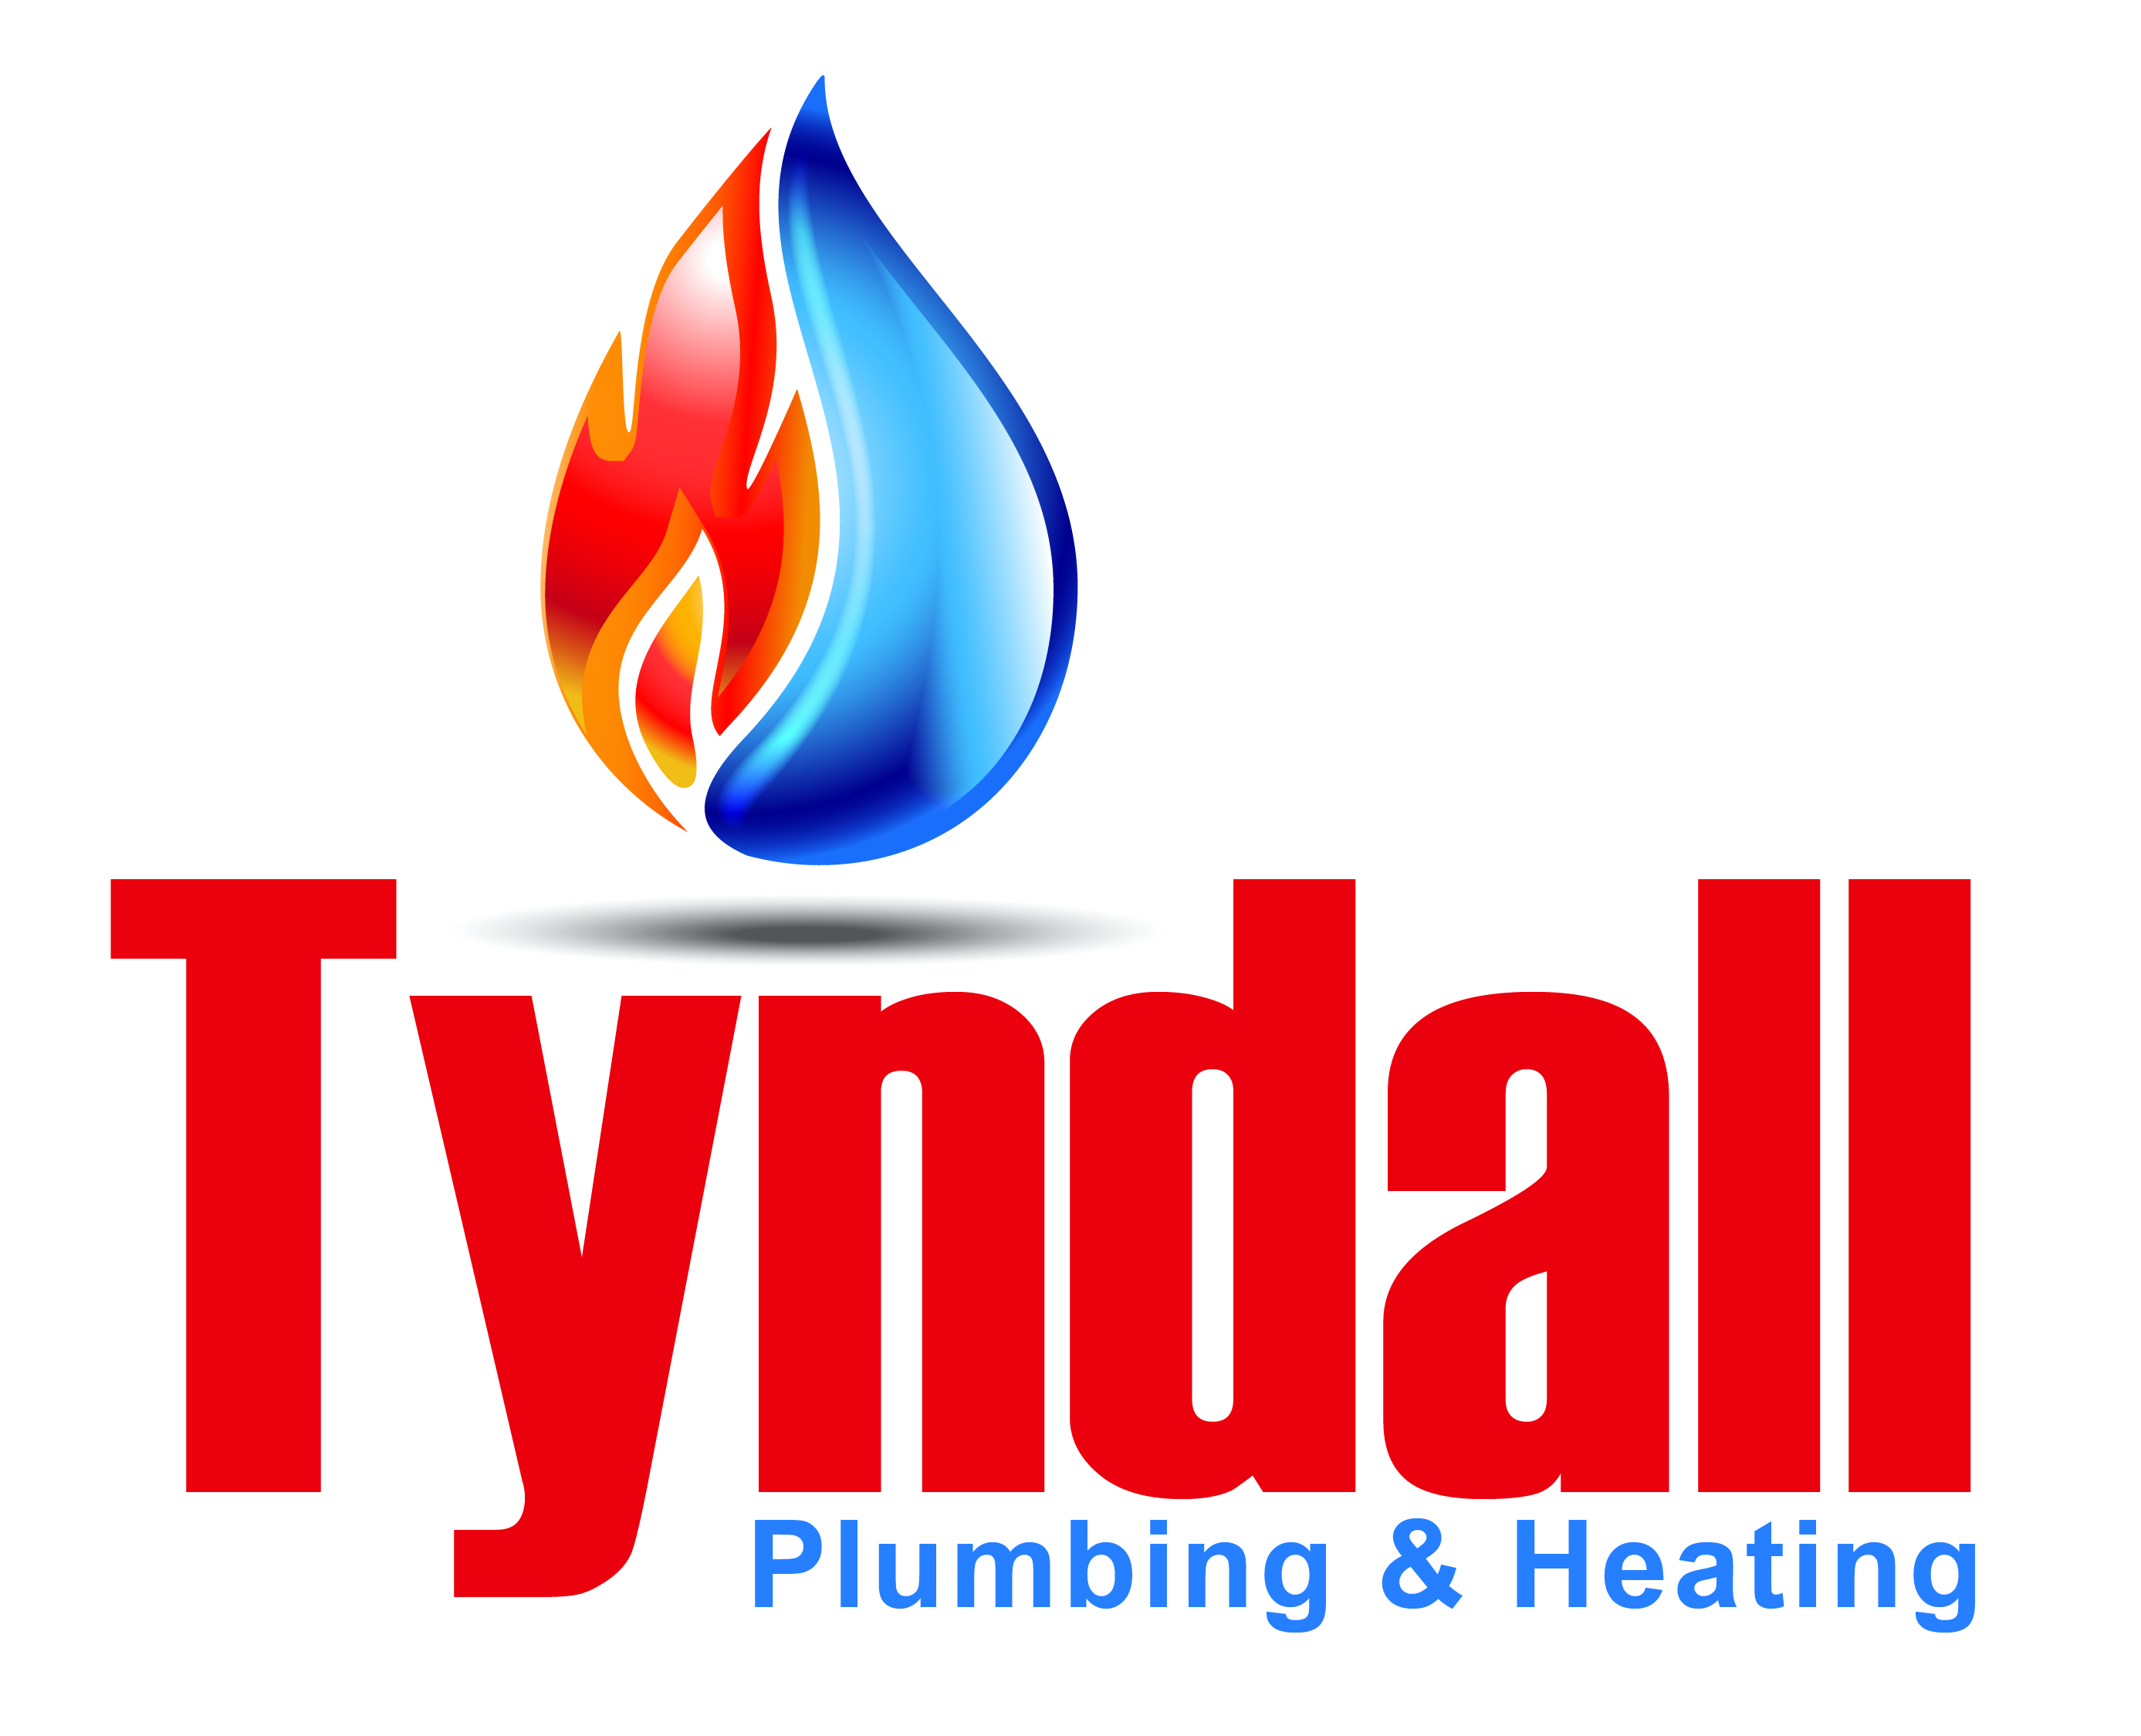 Logo Design by Rob King - Entry No. 72 in the Logo Design Contest Imaginative Logo Design for Tyndall Plumbing & Heating.